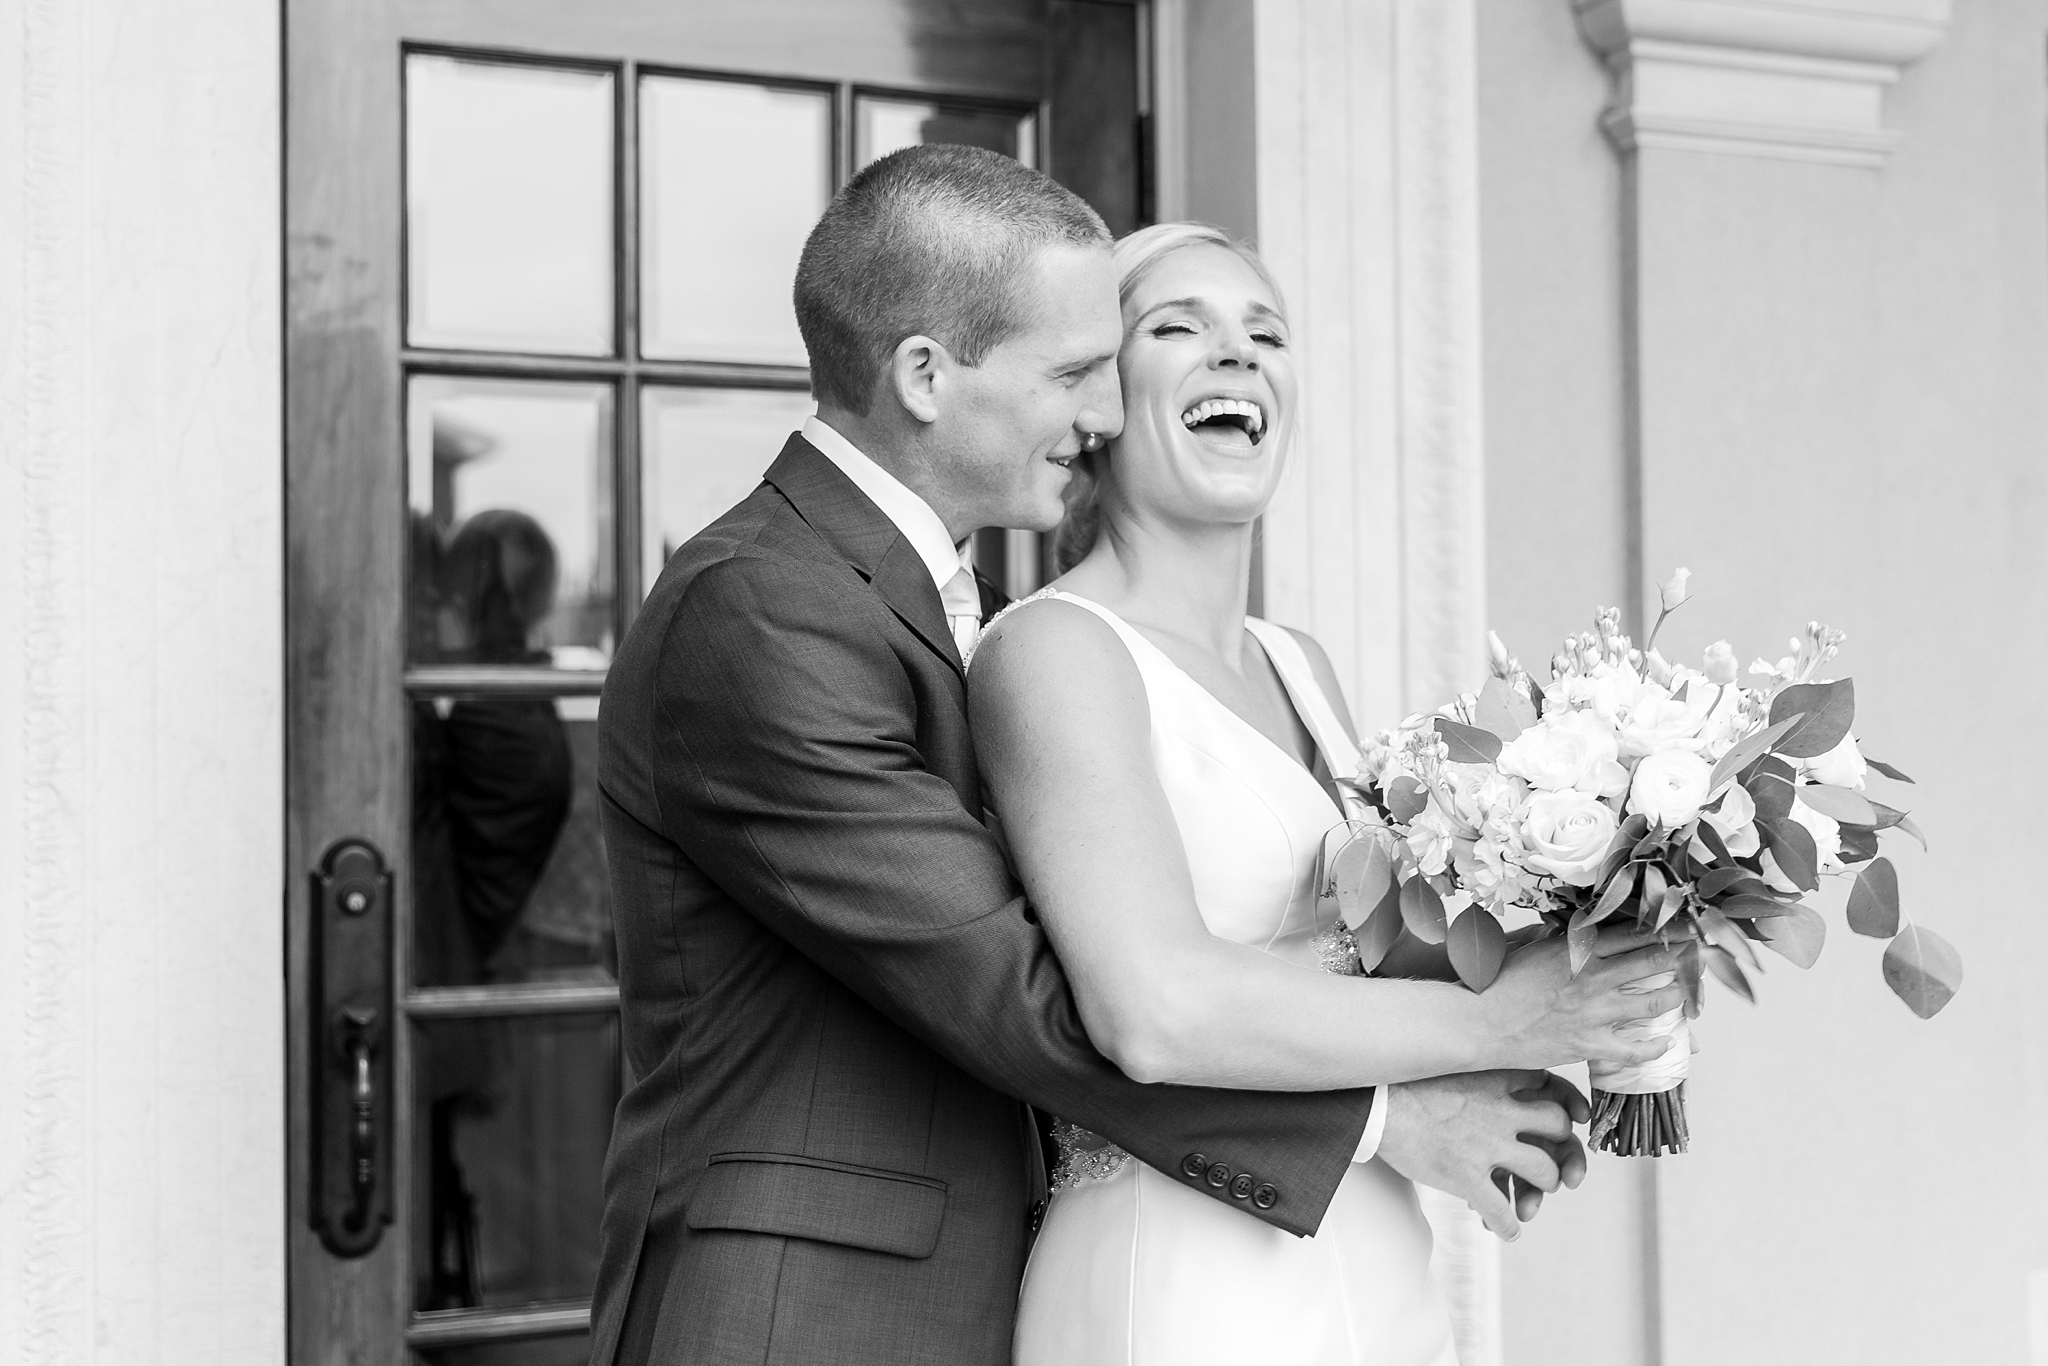 casually-chic-modern-wedding-photos-at-the-chapman-house-in-rochester-michigan-by-courtney-carolyn-photography_0024.jpg